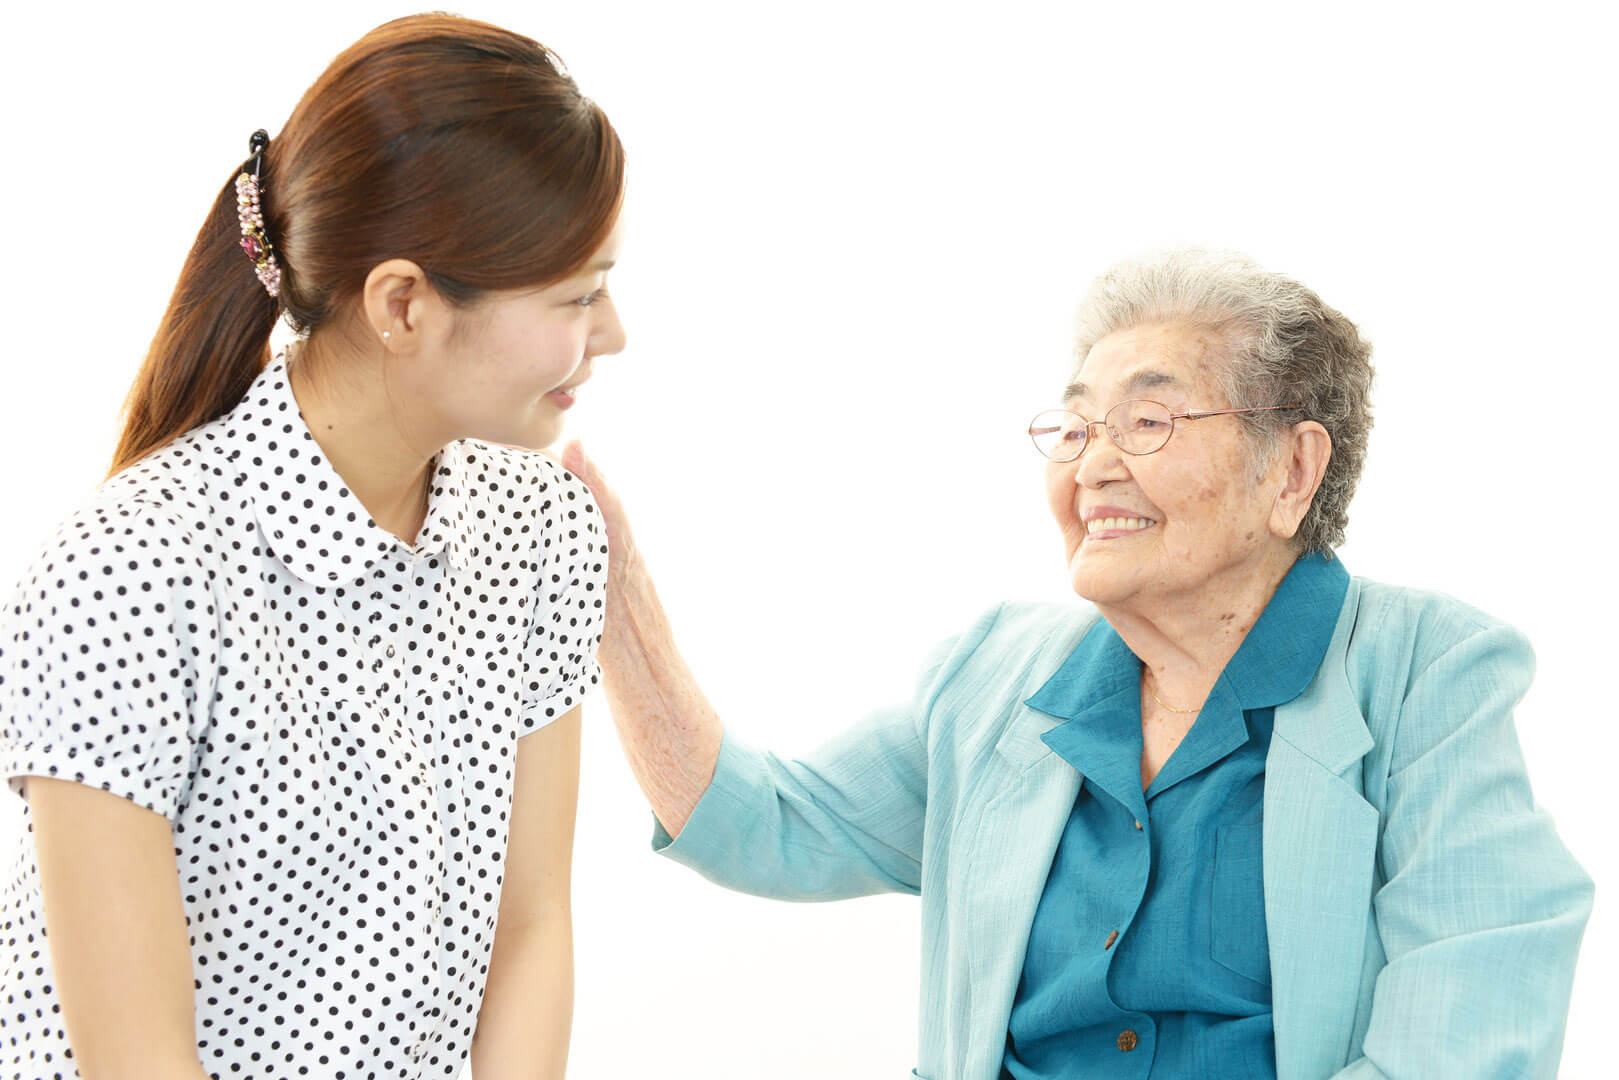 texas-caregiver-support-services-pic3